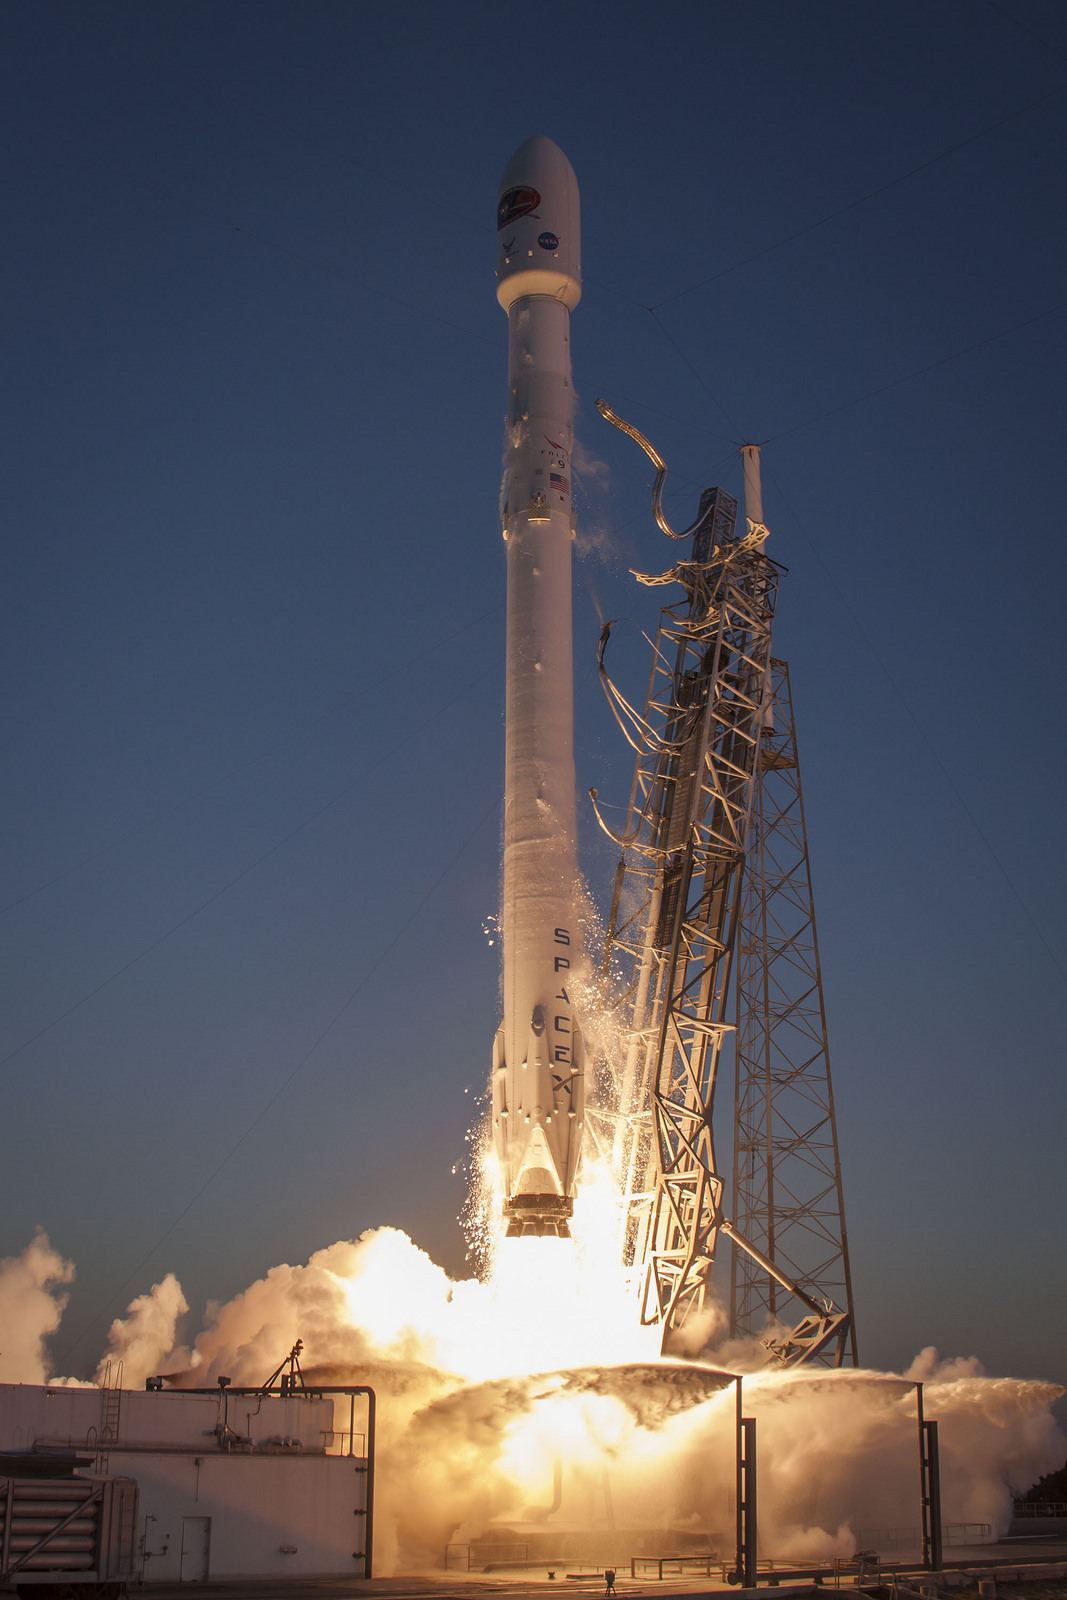 spacex3 Falcon 9 lifted off from SpaceX Launch Complex